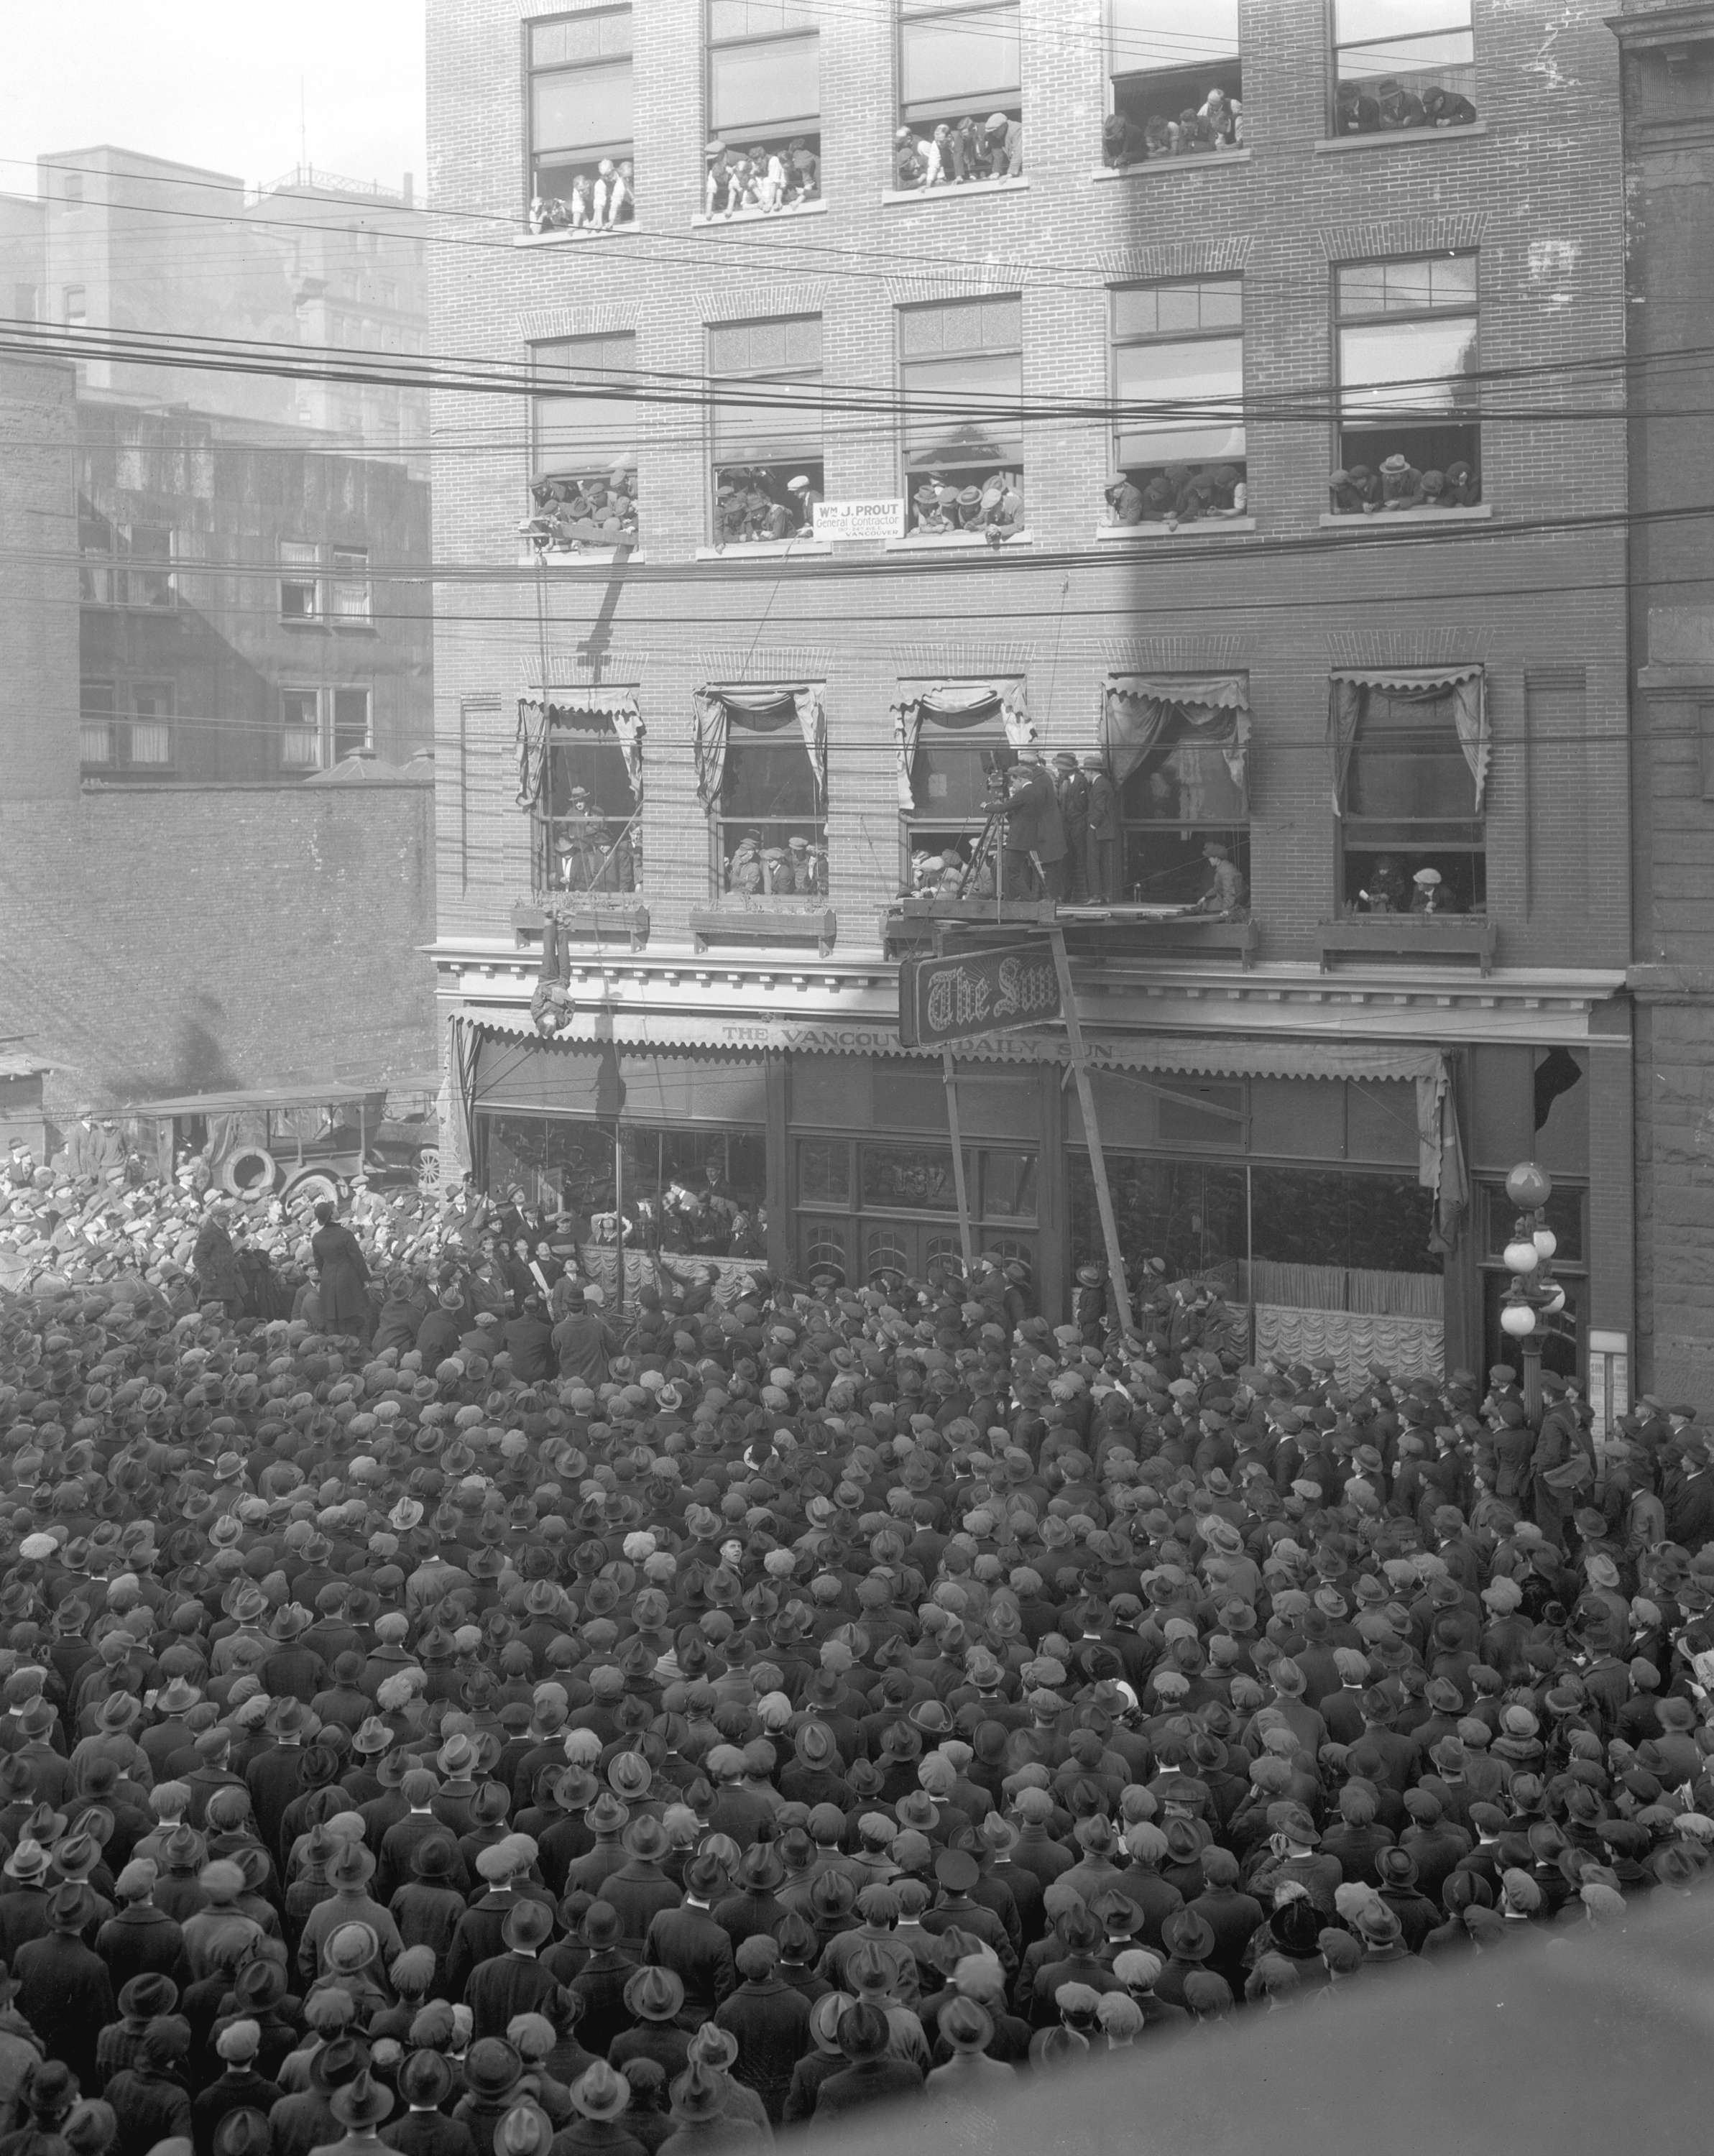 Harry Houdini hanging upside down in Vancouver